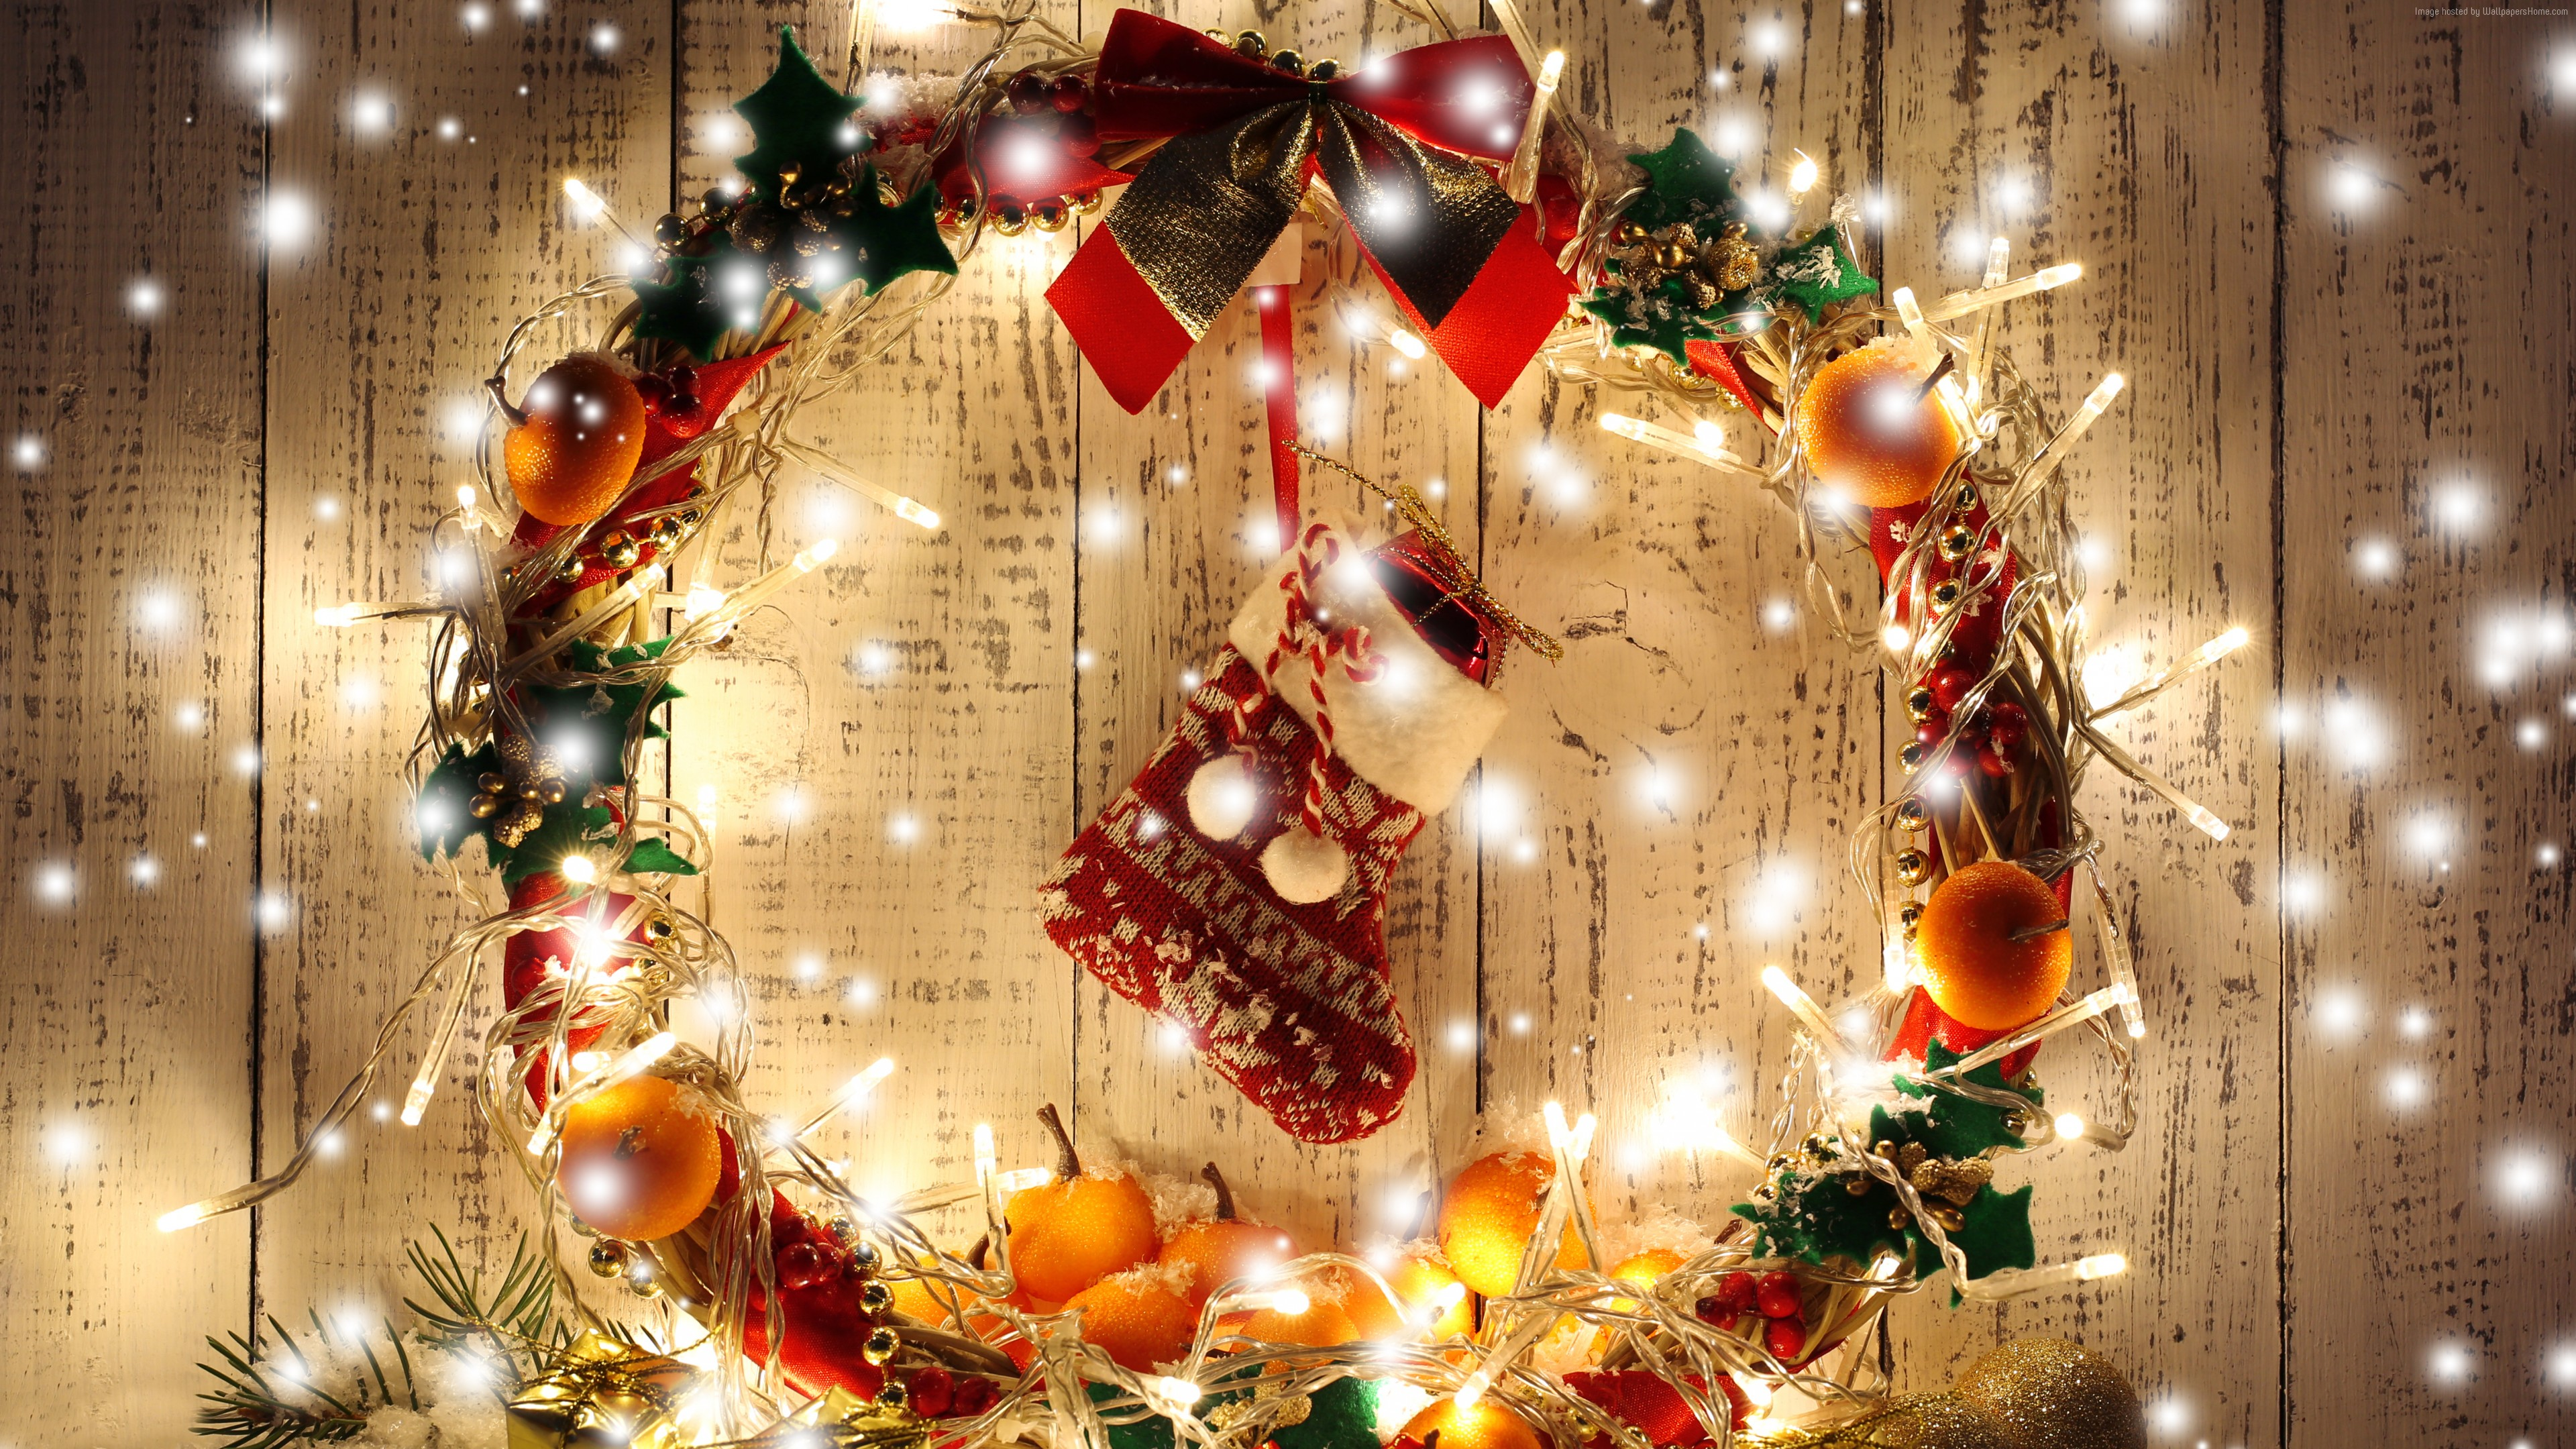 Wallpaper Christmas, New Year, Wreath, garland, gift, balls, decorations, Holidays